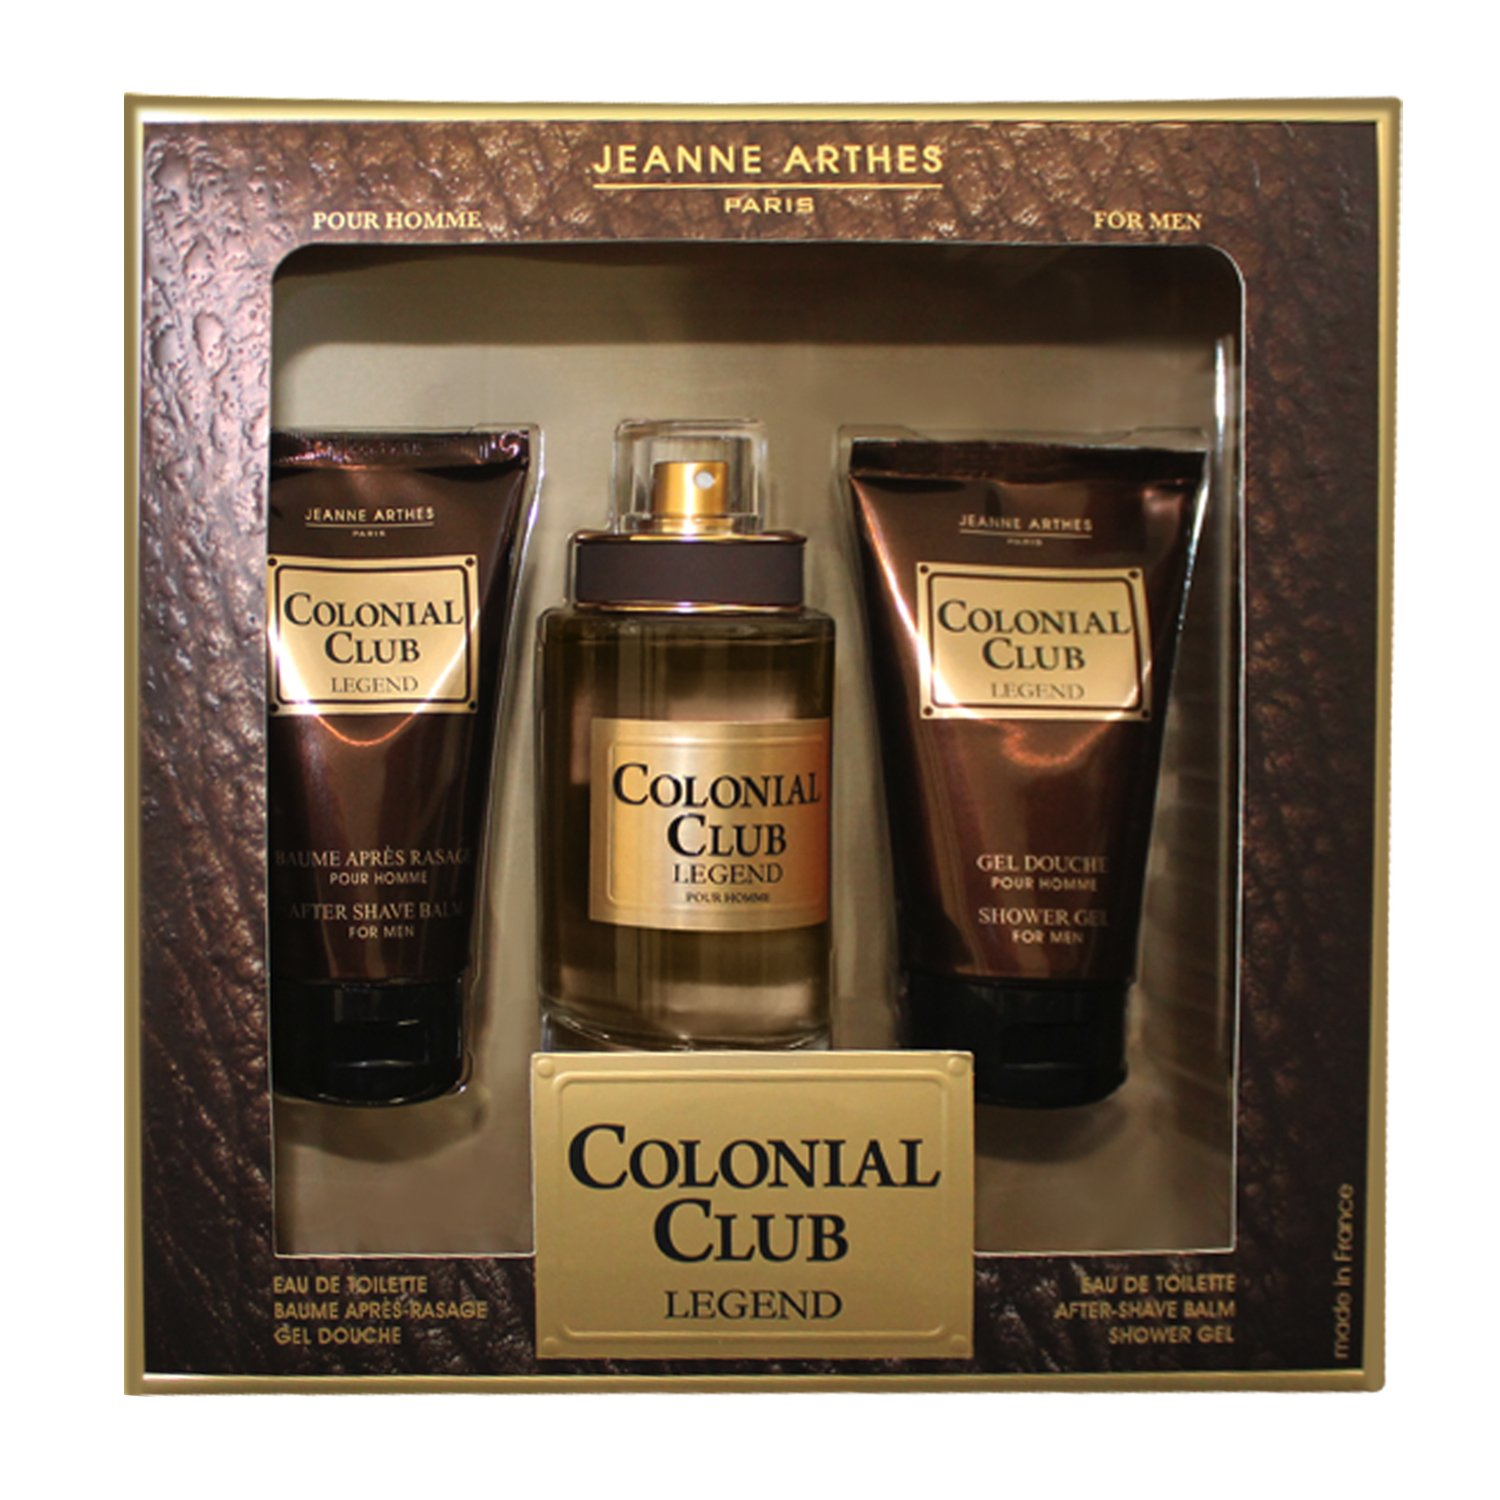 Jeanne arthes Cofanetto coloniale Club Legend Eau de Toilette 100 ml + Gel Doccia 75 ml + Apres Rasatura 75 ml PF02429F